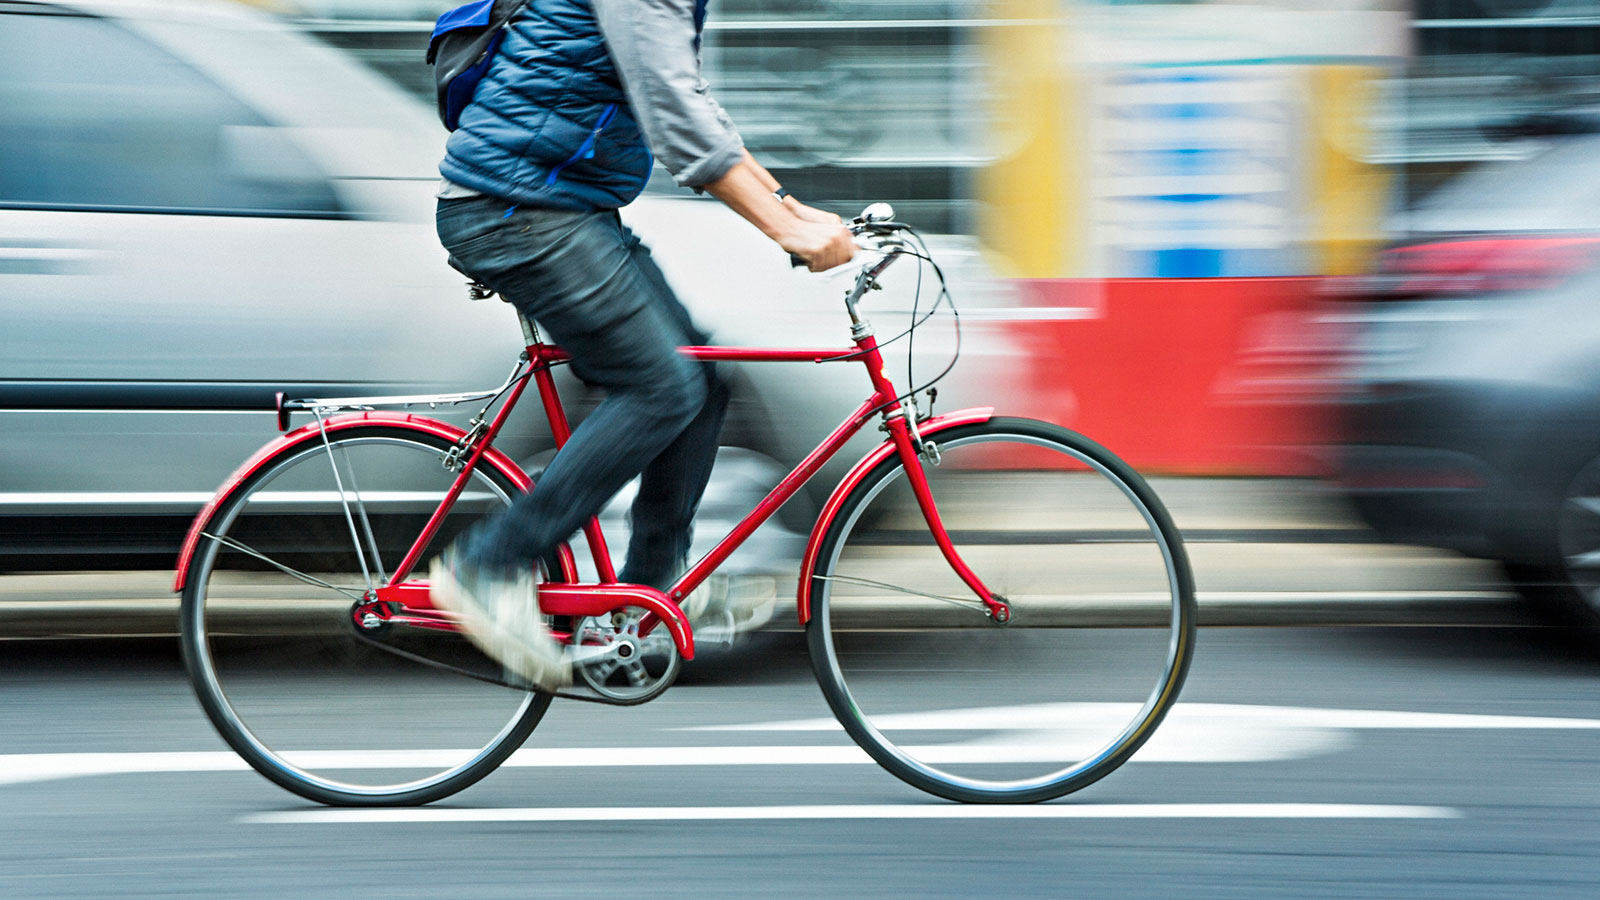 Do Bikes Slow Down Car Traffic? Actually, No